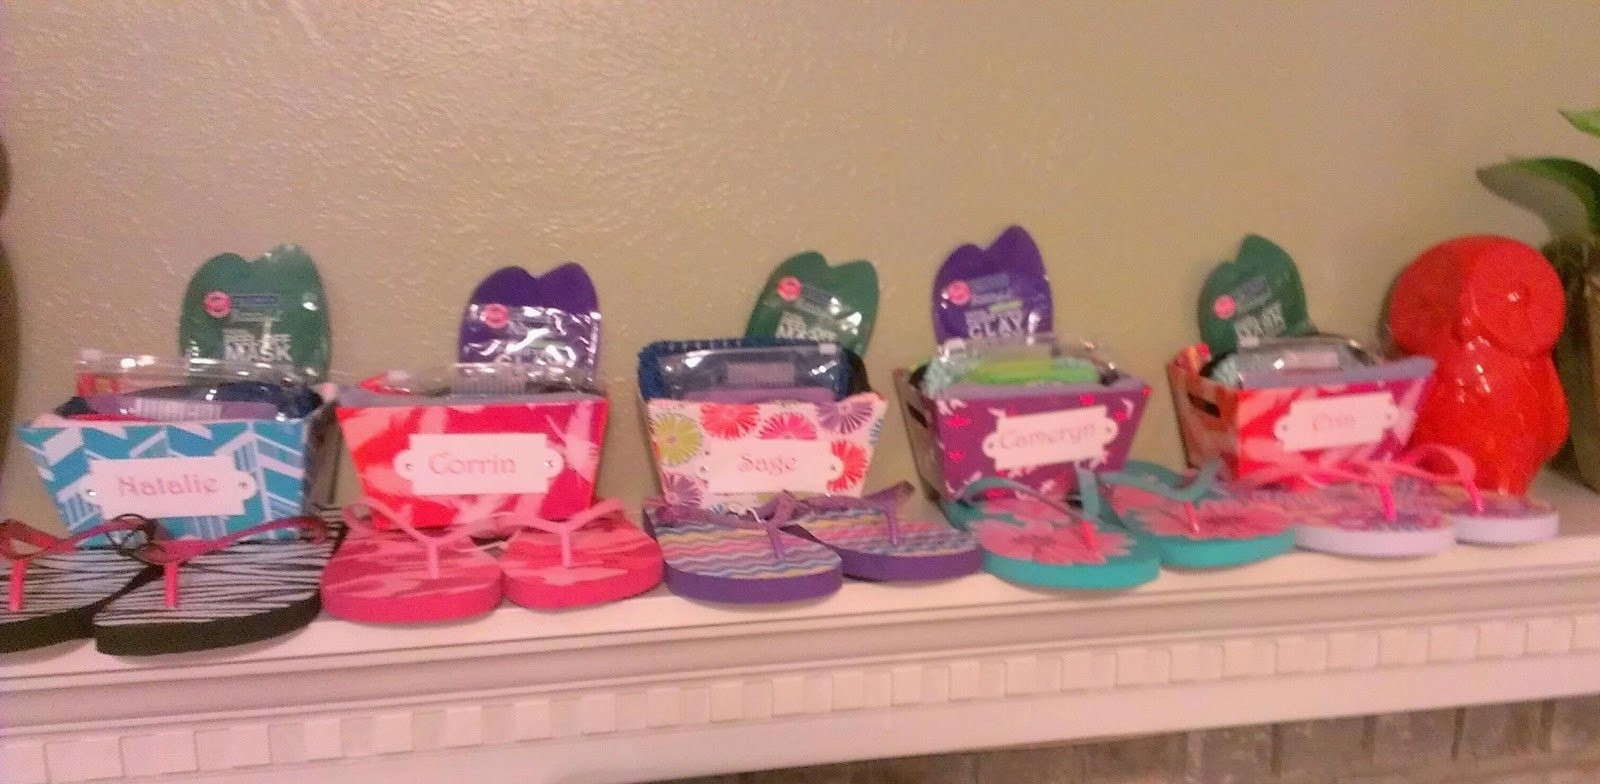 10 Gorgeous Birthday Party Ideas For 9 Yr Old Girl organized designby jess party time spa birthday party 1 2020